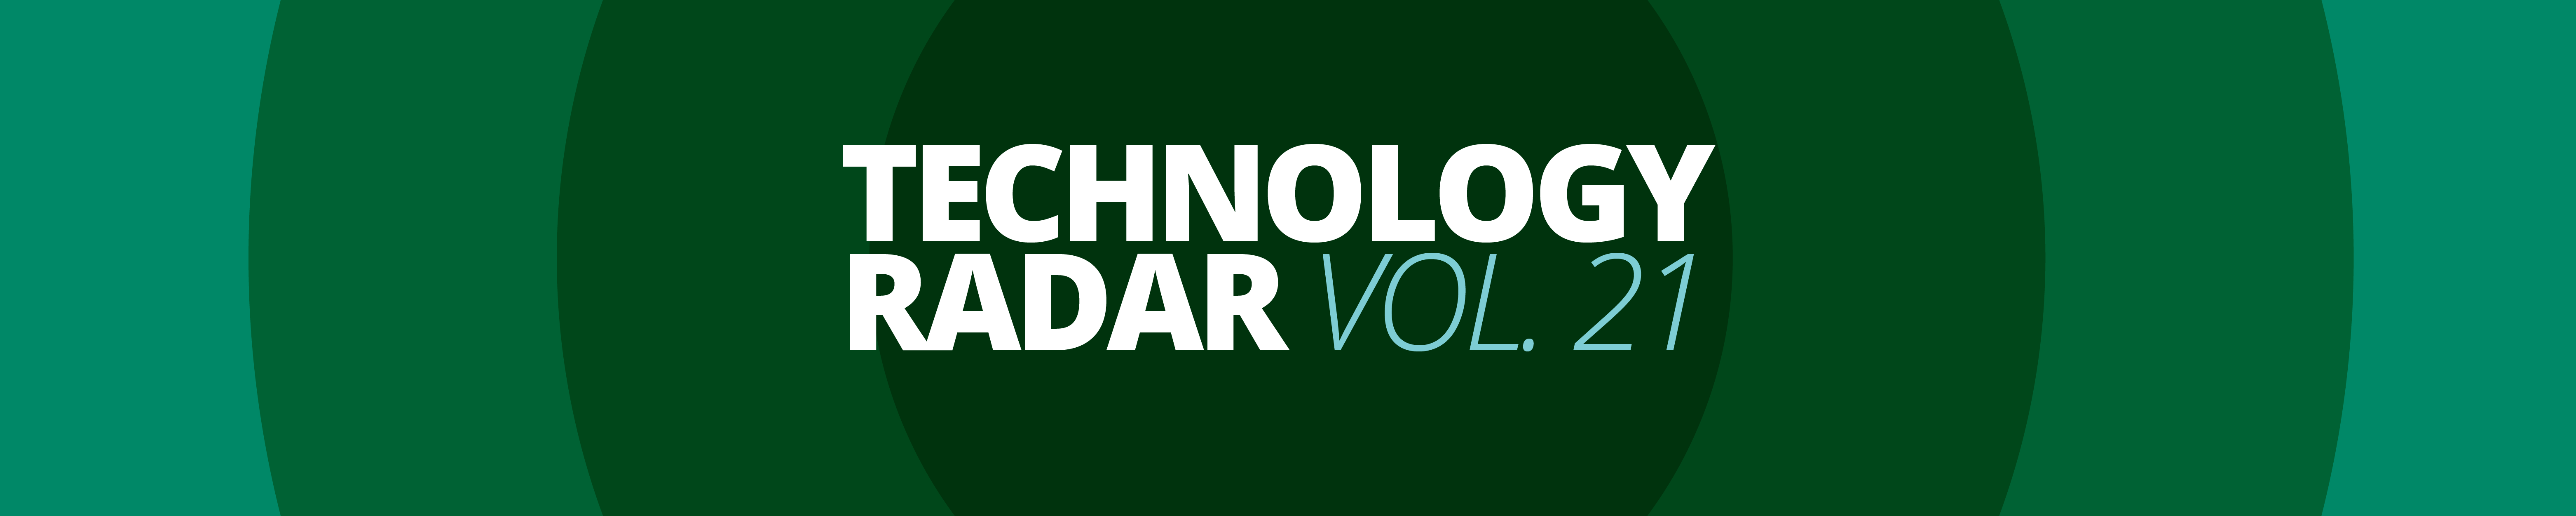 Technology Radar Vol. 21